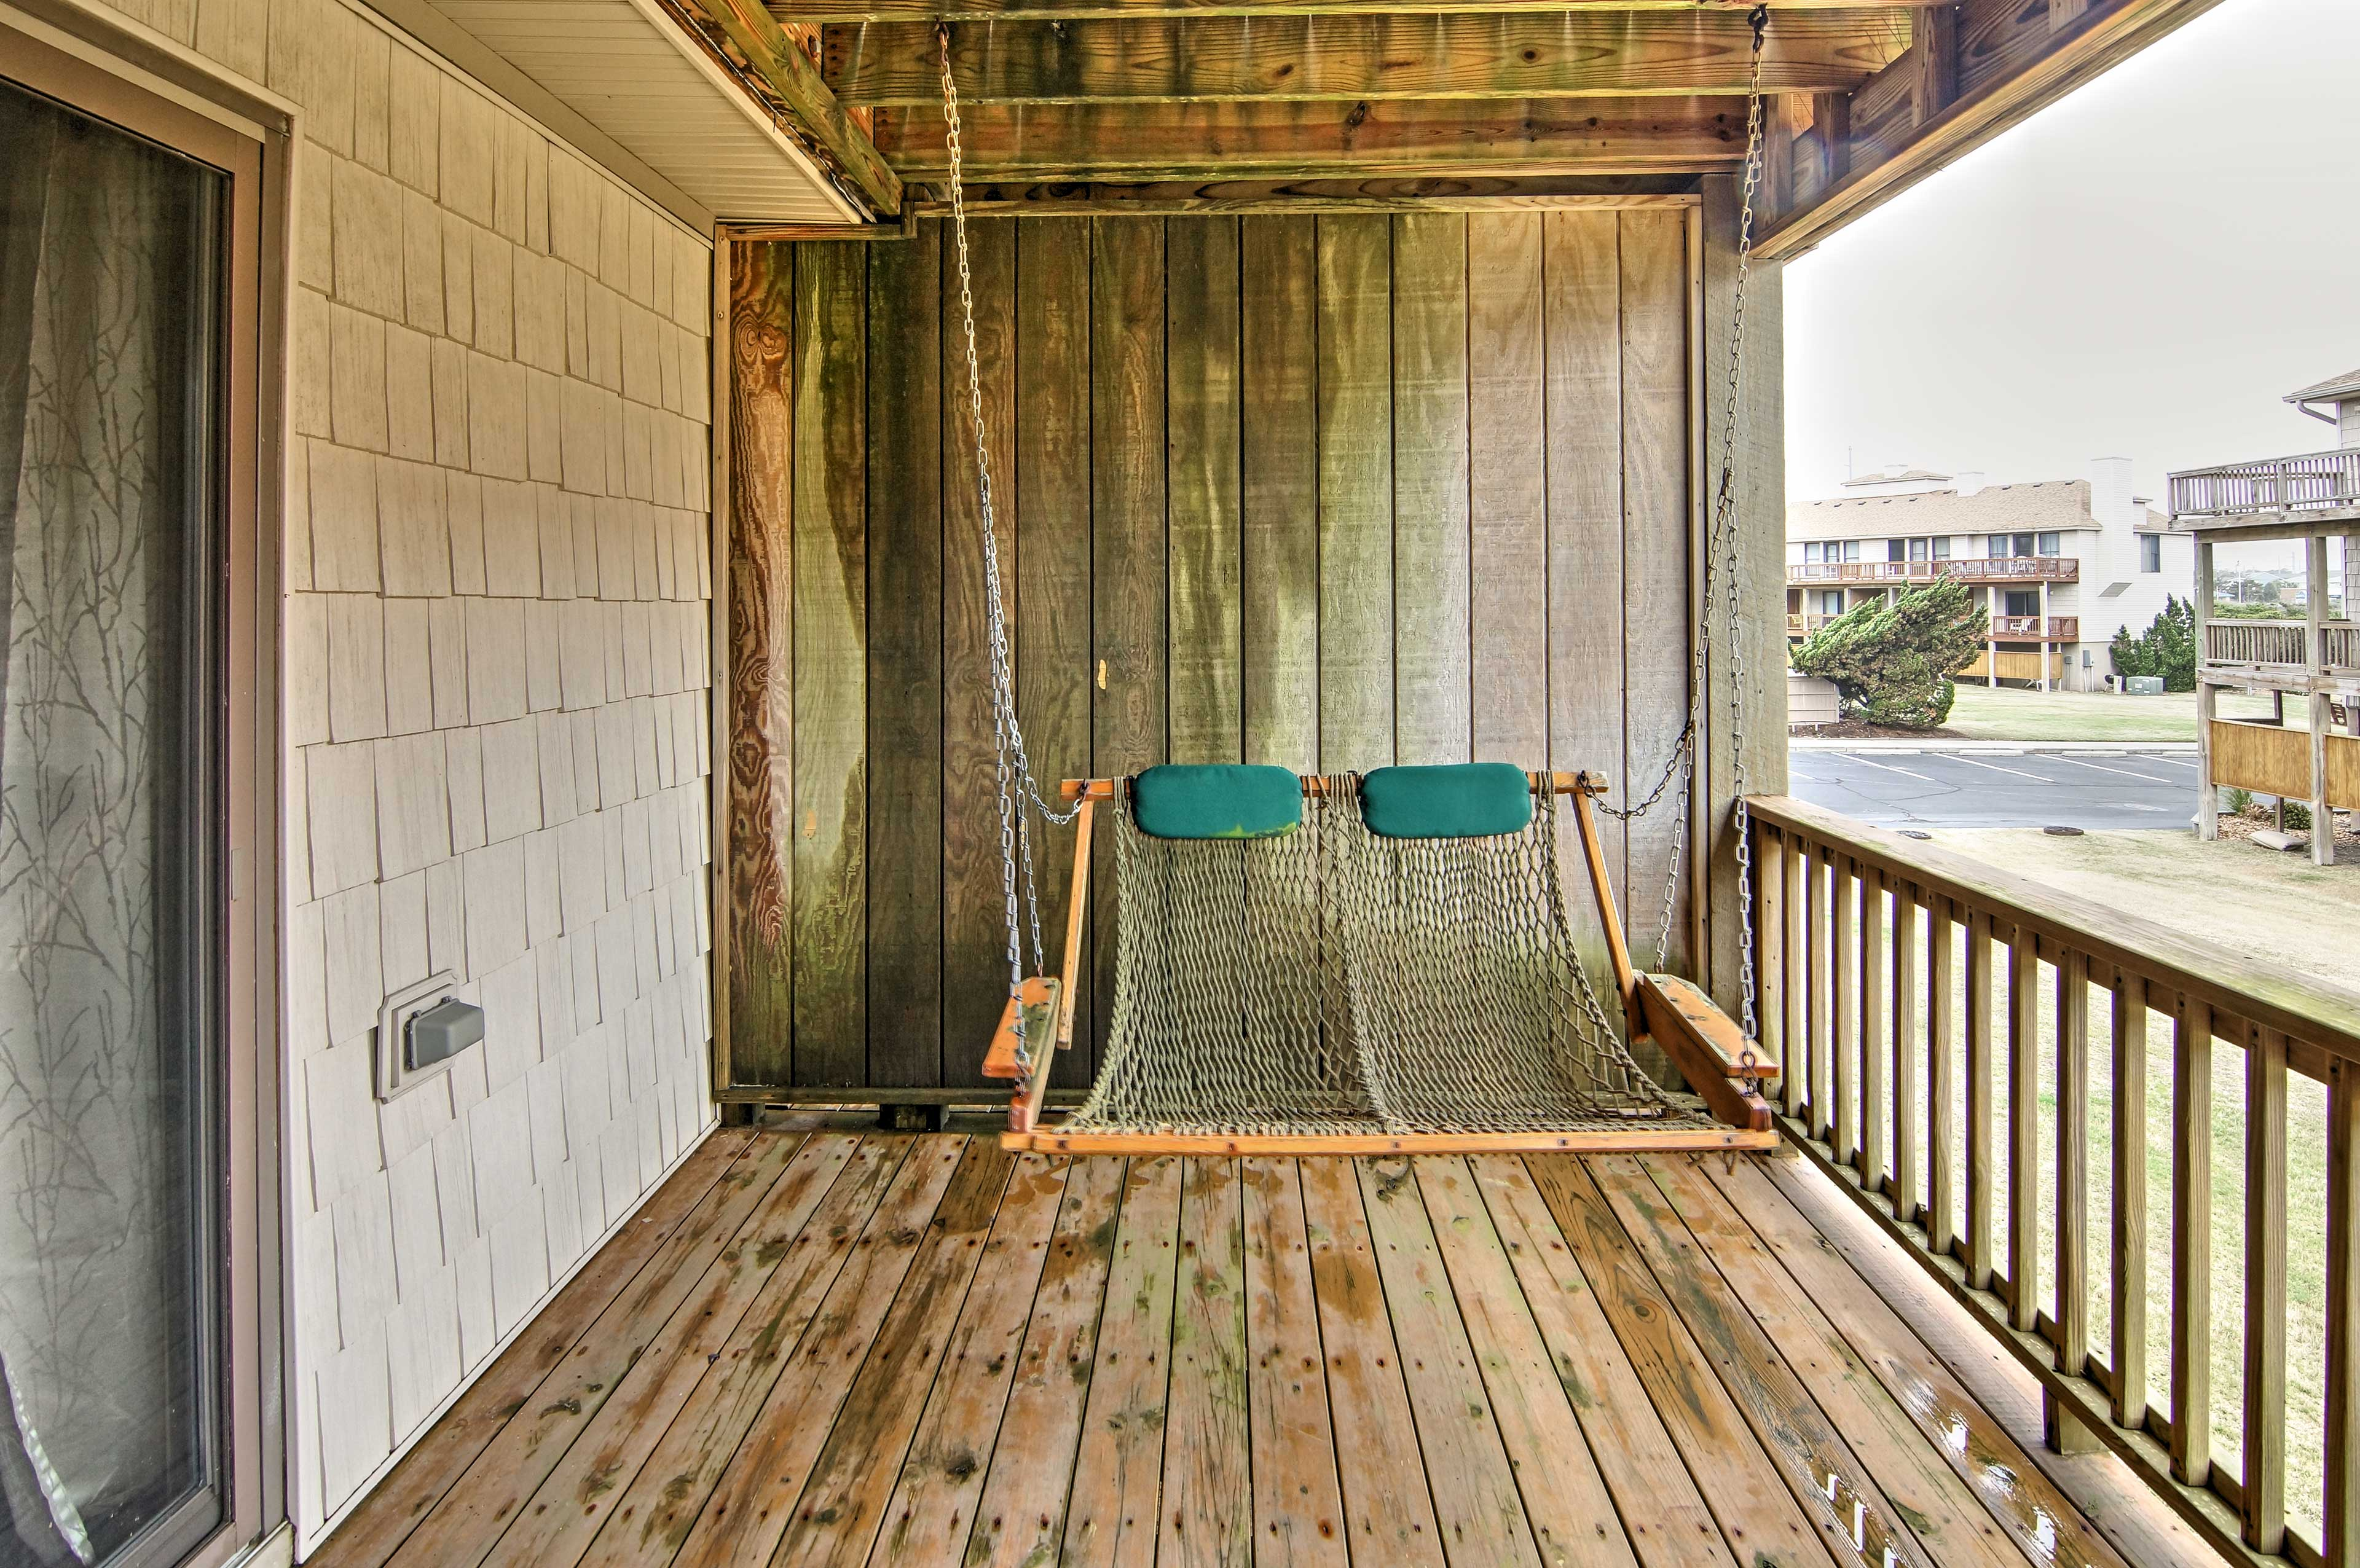 Lounge on the main-floor deck and sway on the hanging swing.